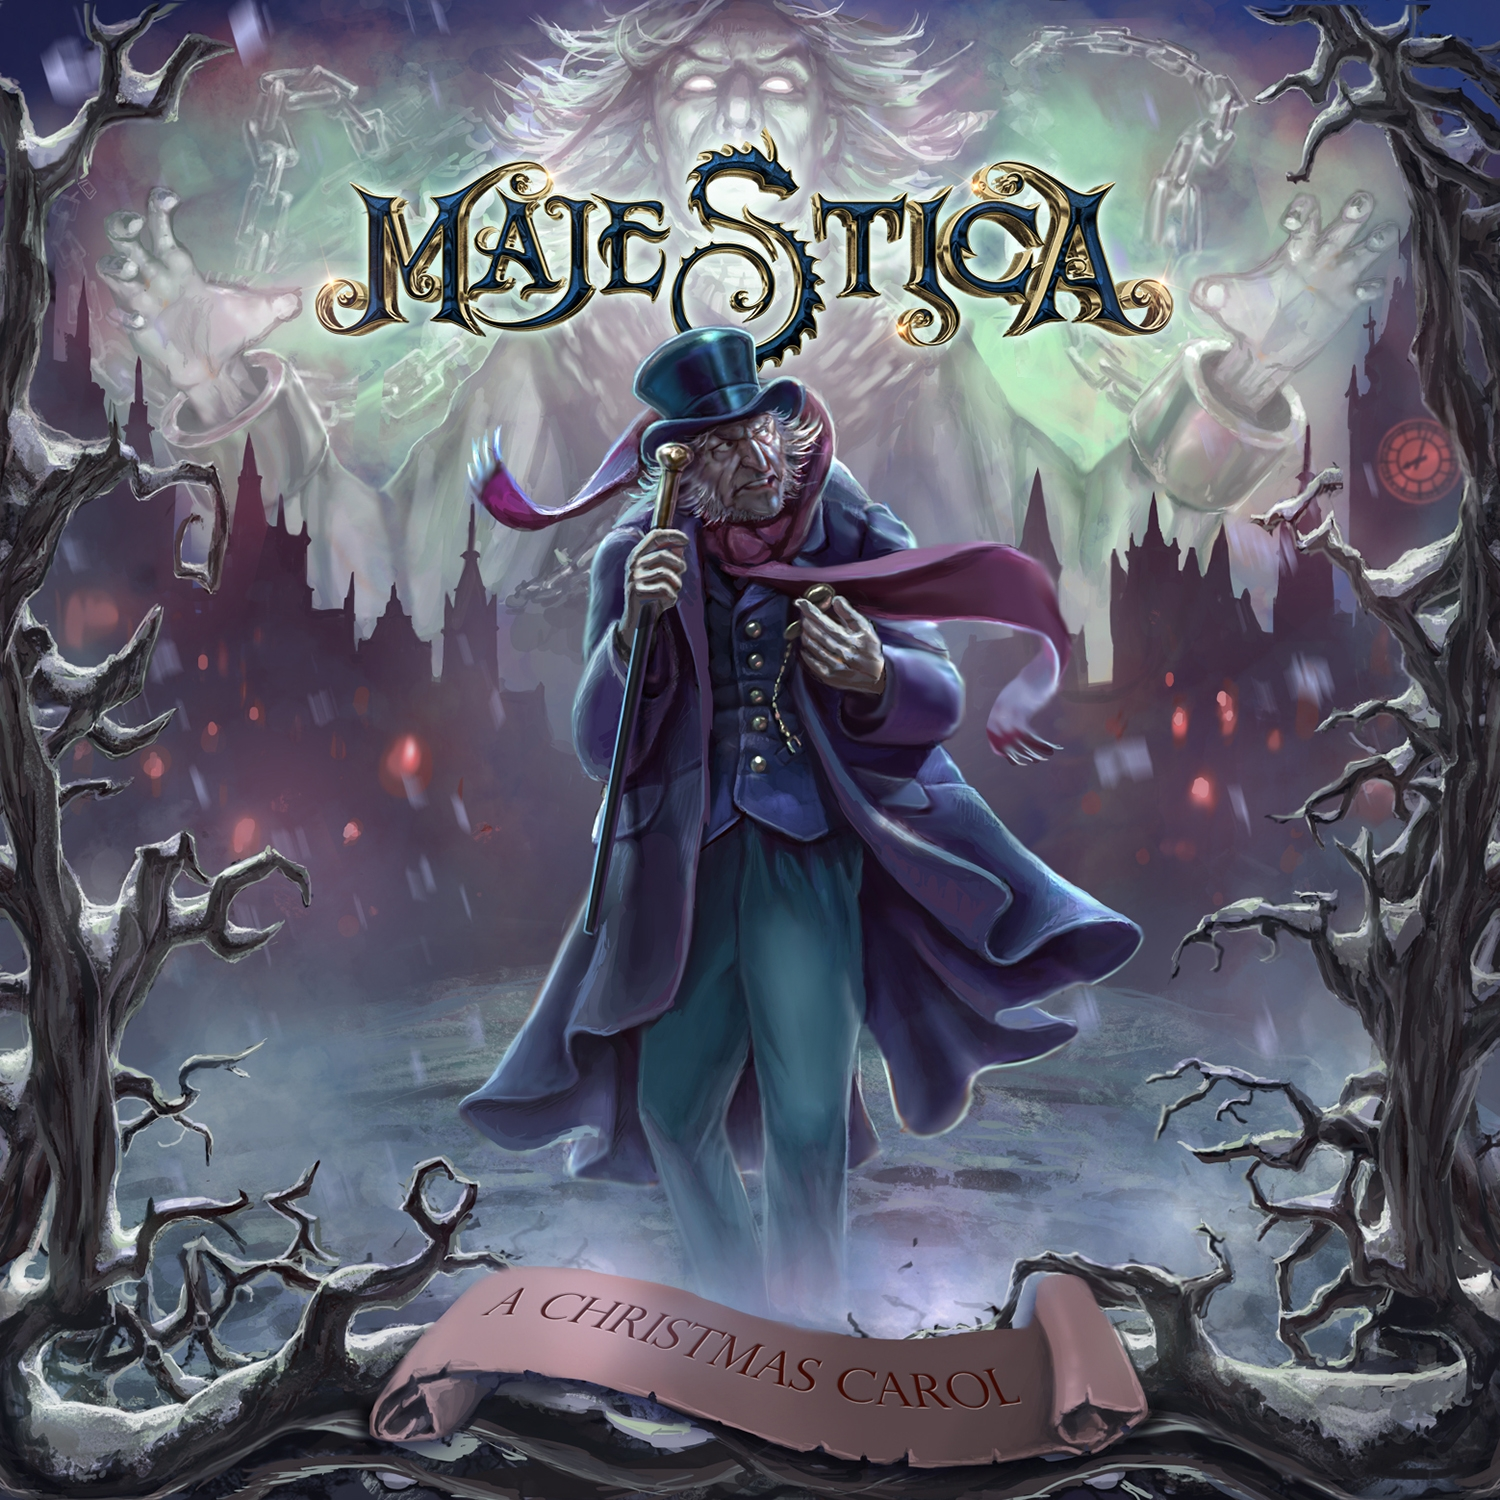 REVIEW: Majestica – A Christmas Carol